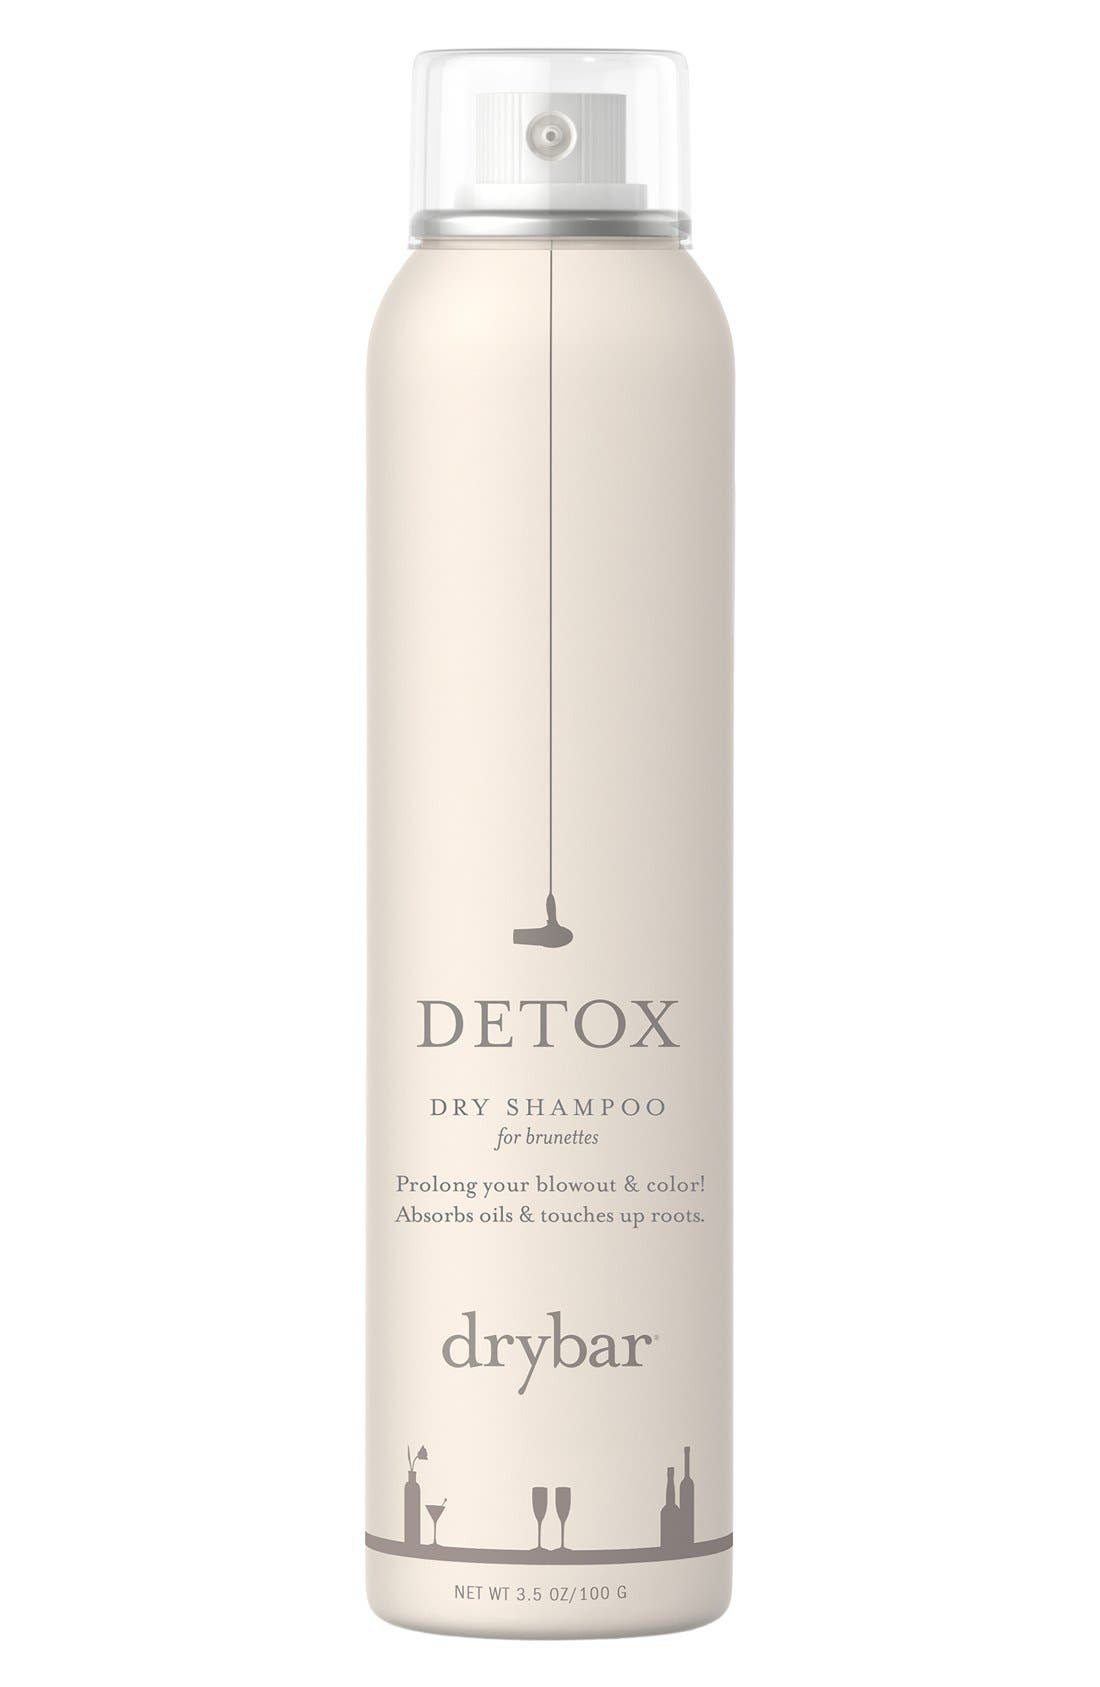 DRYBAR, Detox Dry Shampoo for Brunettes, Alternate thumbnail 2, color, NO COLOR